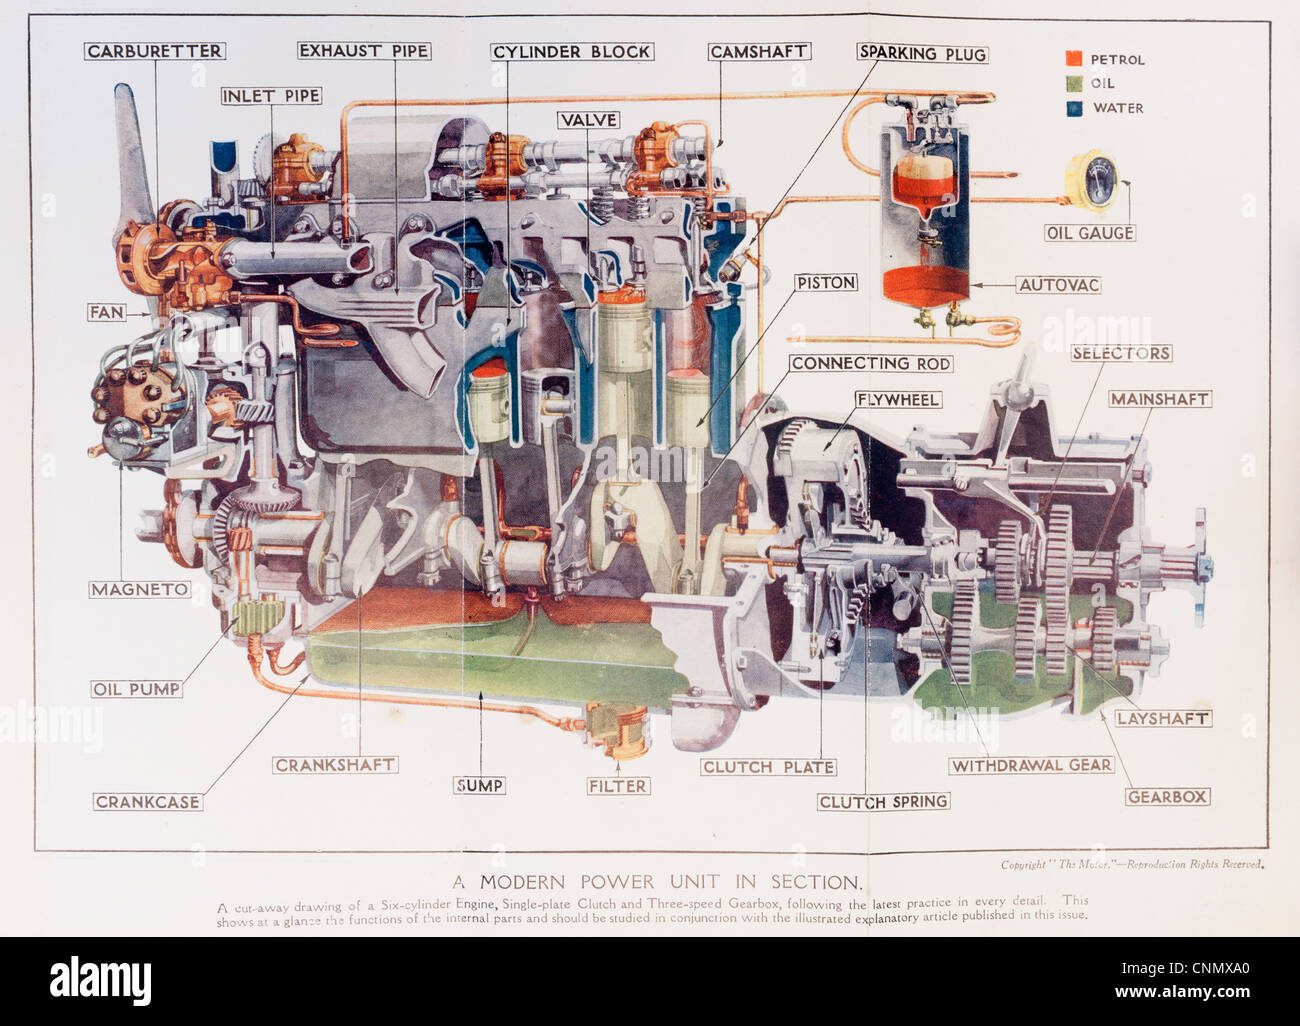 hight resolution of 1920s motor manual colour diagram of how the engine and gearbox of a 1927 car